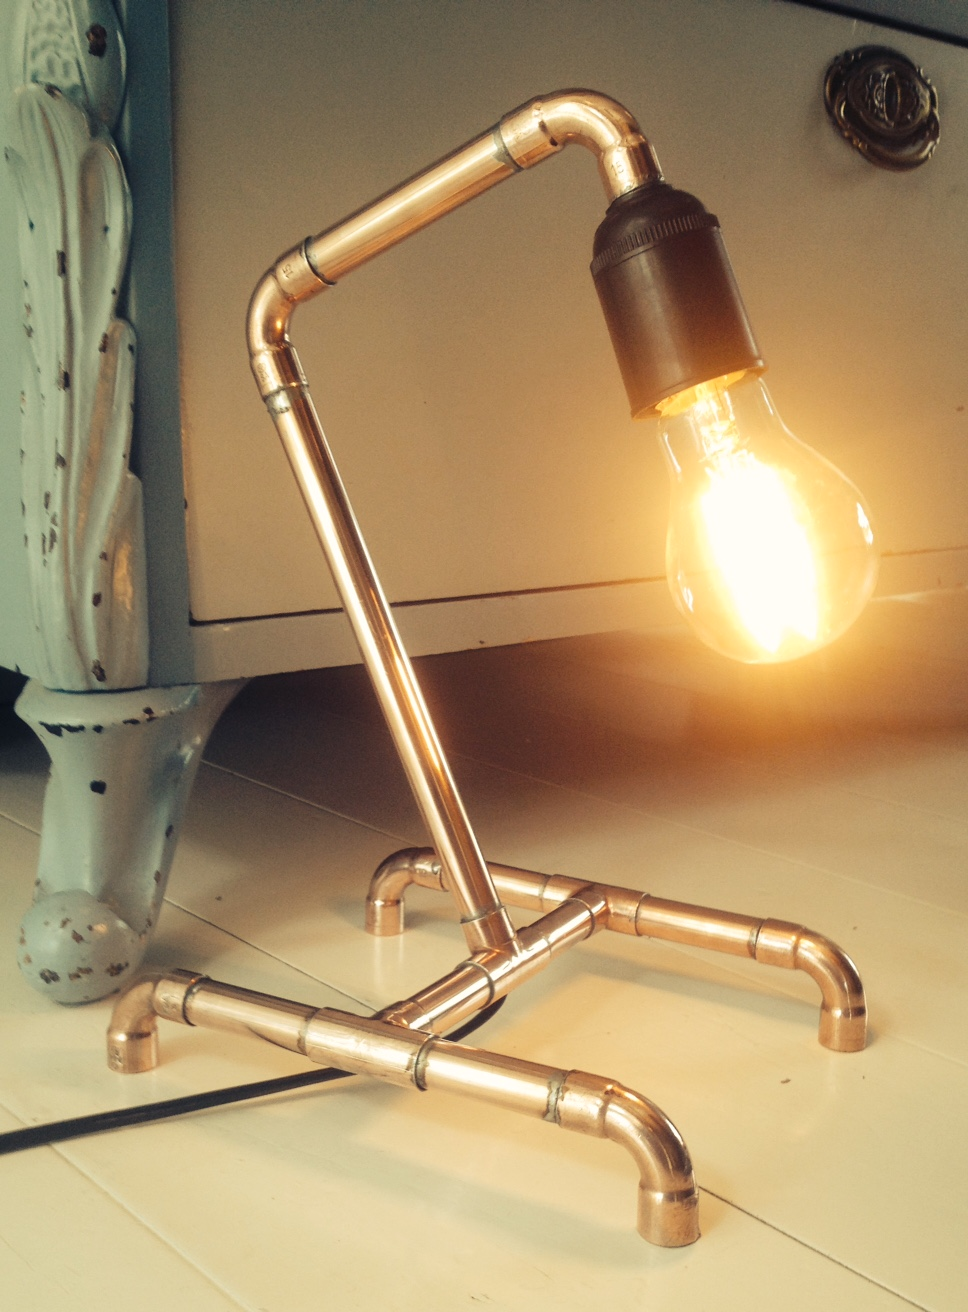 Click image for larger version  Name:copper lamp 2.jpg Views:113 Size:339.6 KB ID:197426